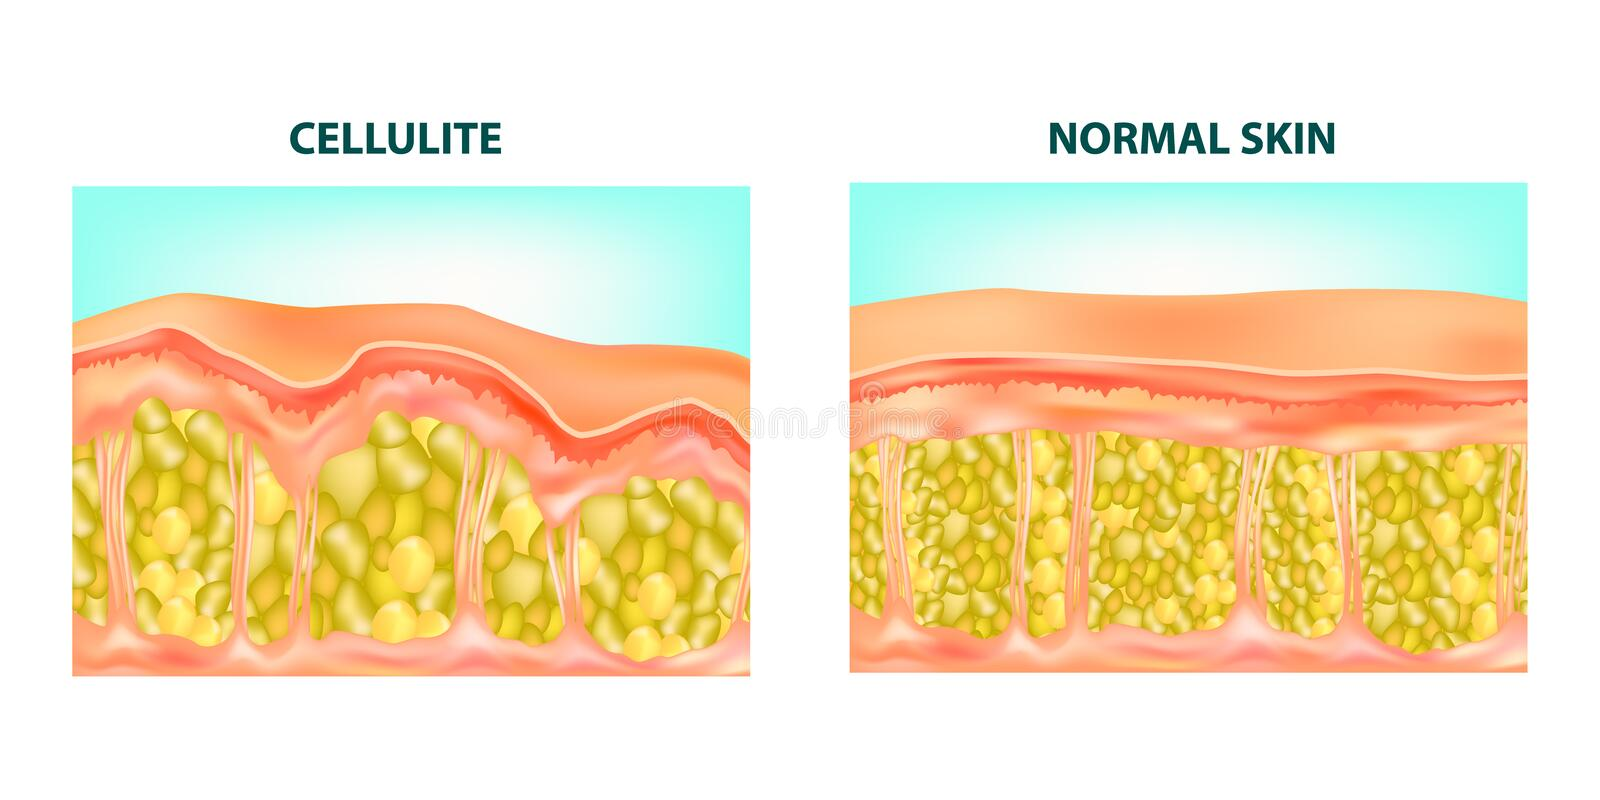 Cellulite formation. vector illustration